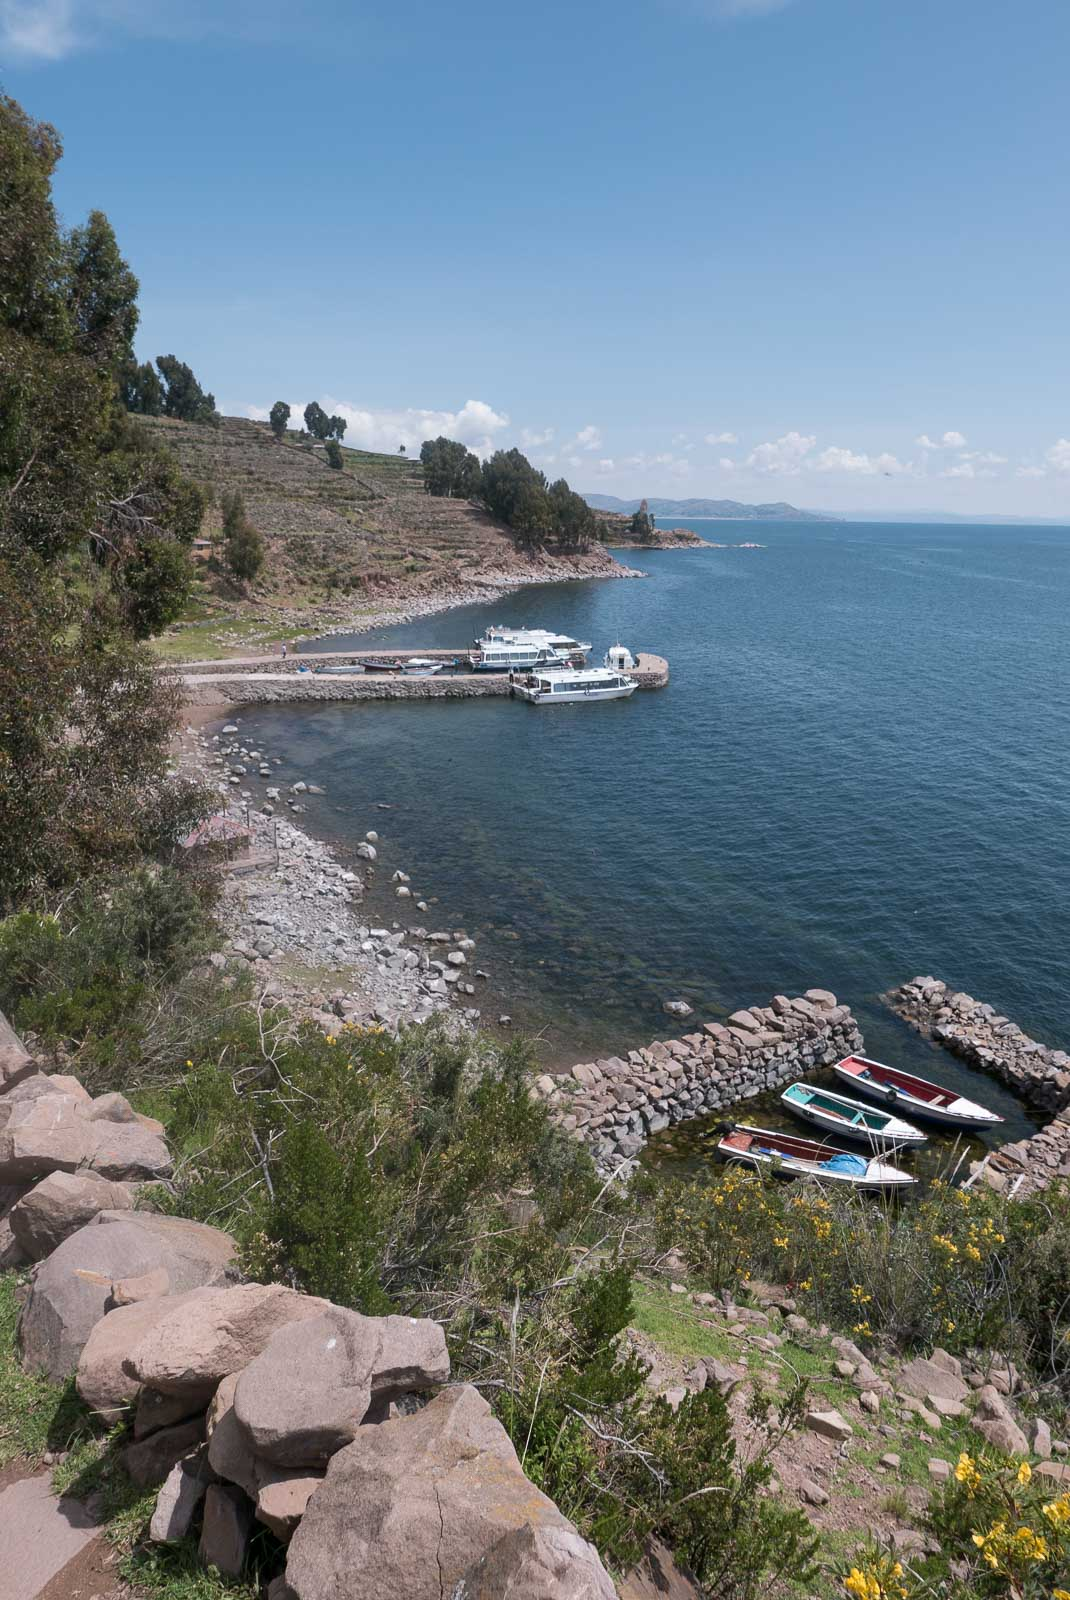 Views over Lake Titicaca from Taquile Island.